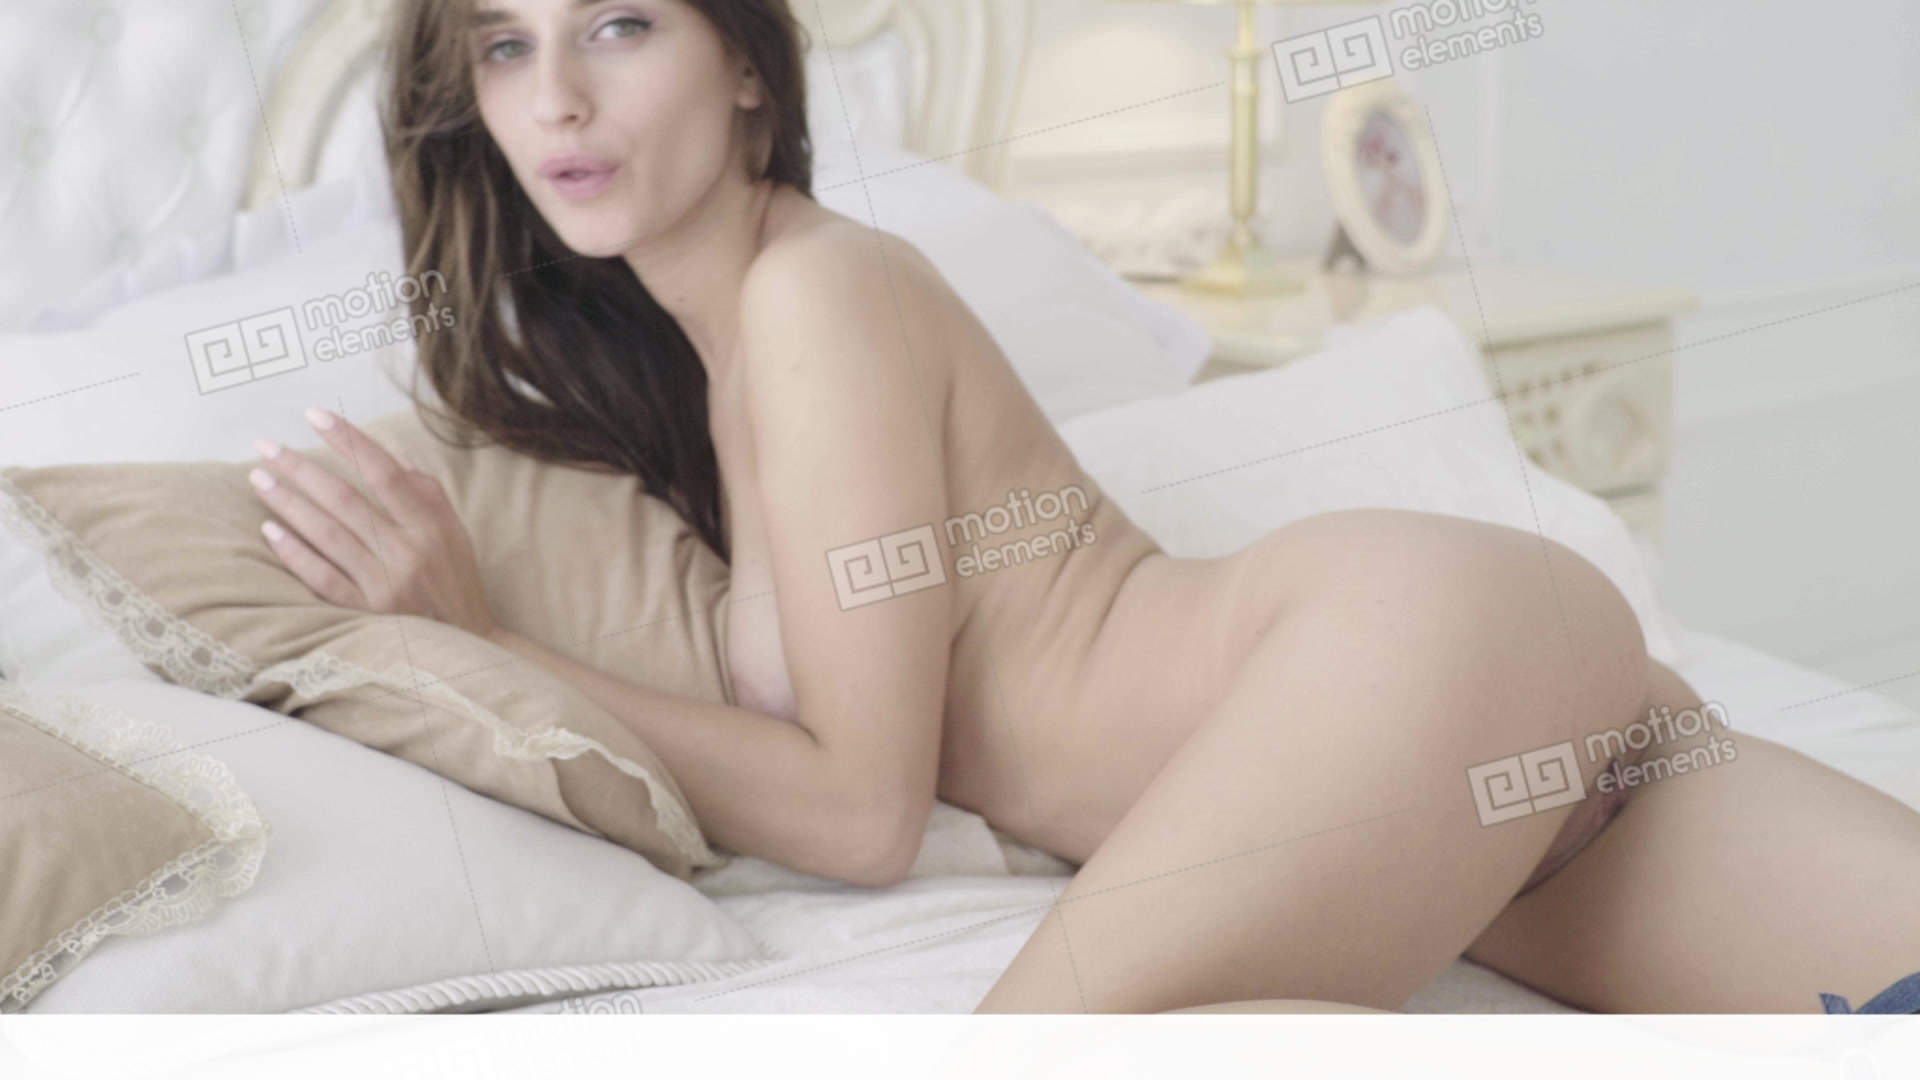 Of nude pcs constance marie